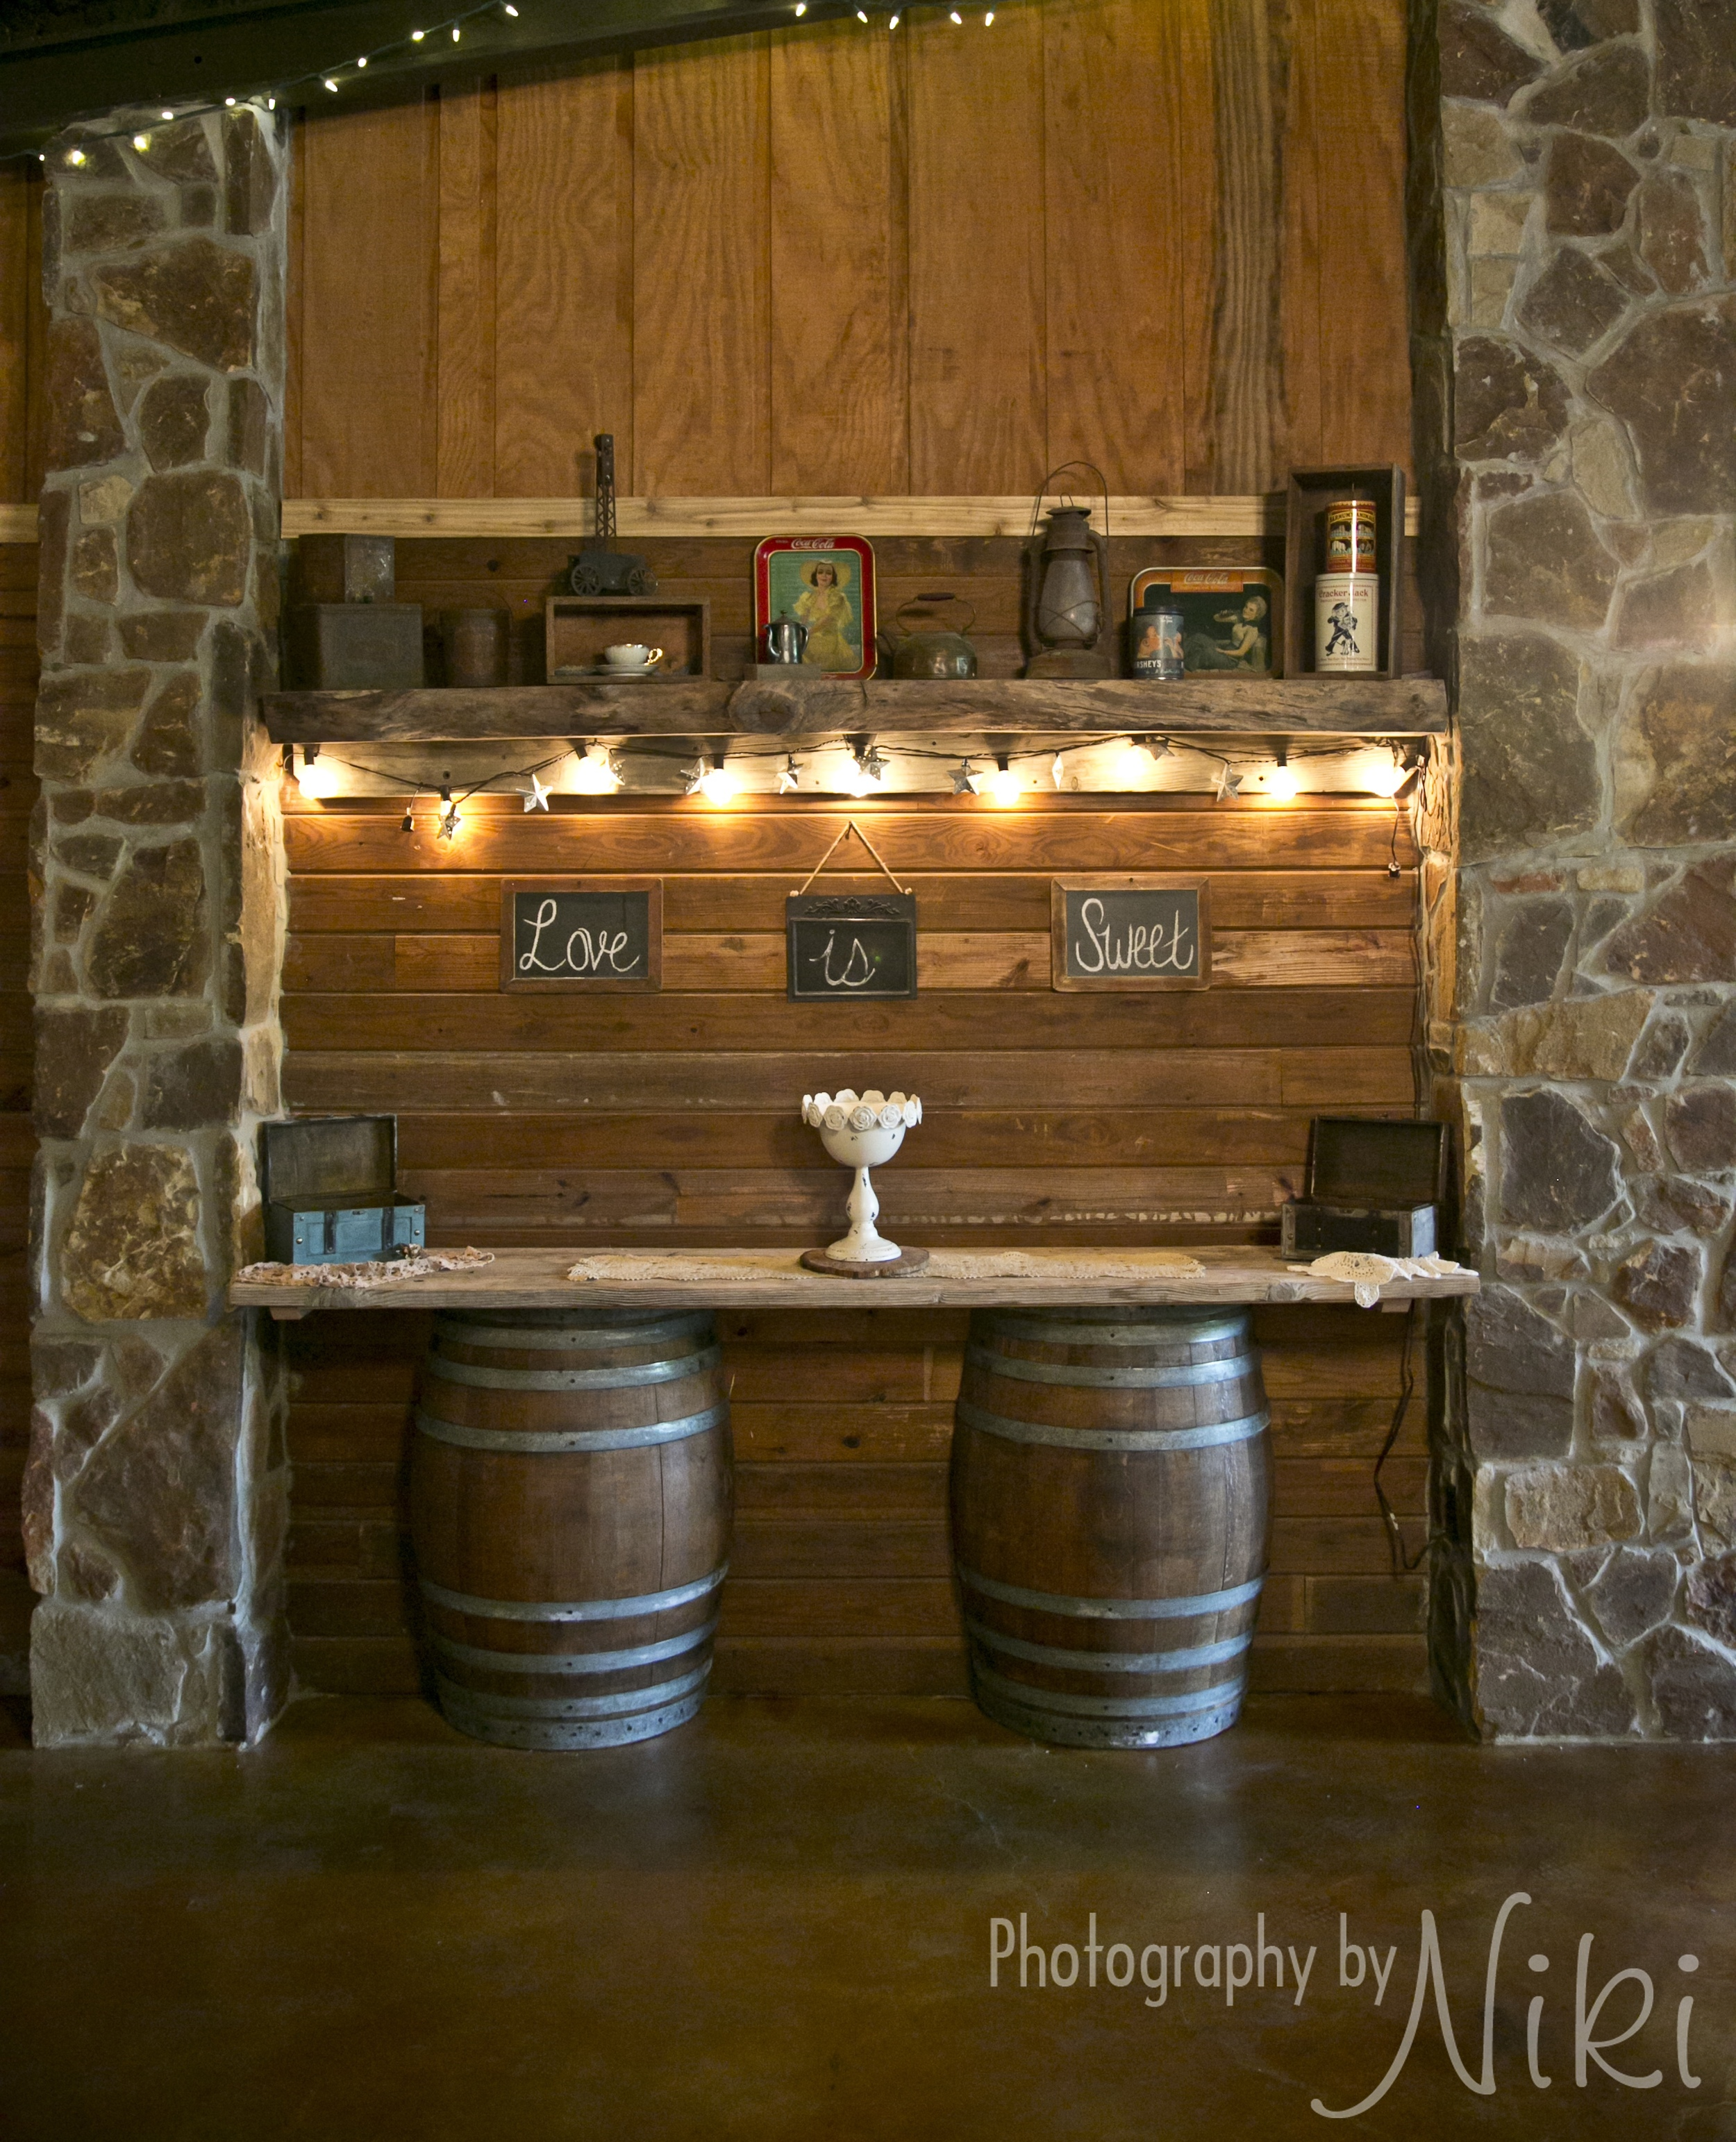 Beverage Bar lit up and ready to go.